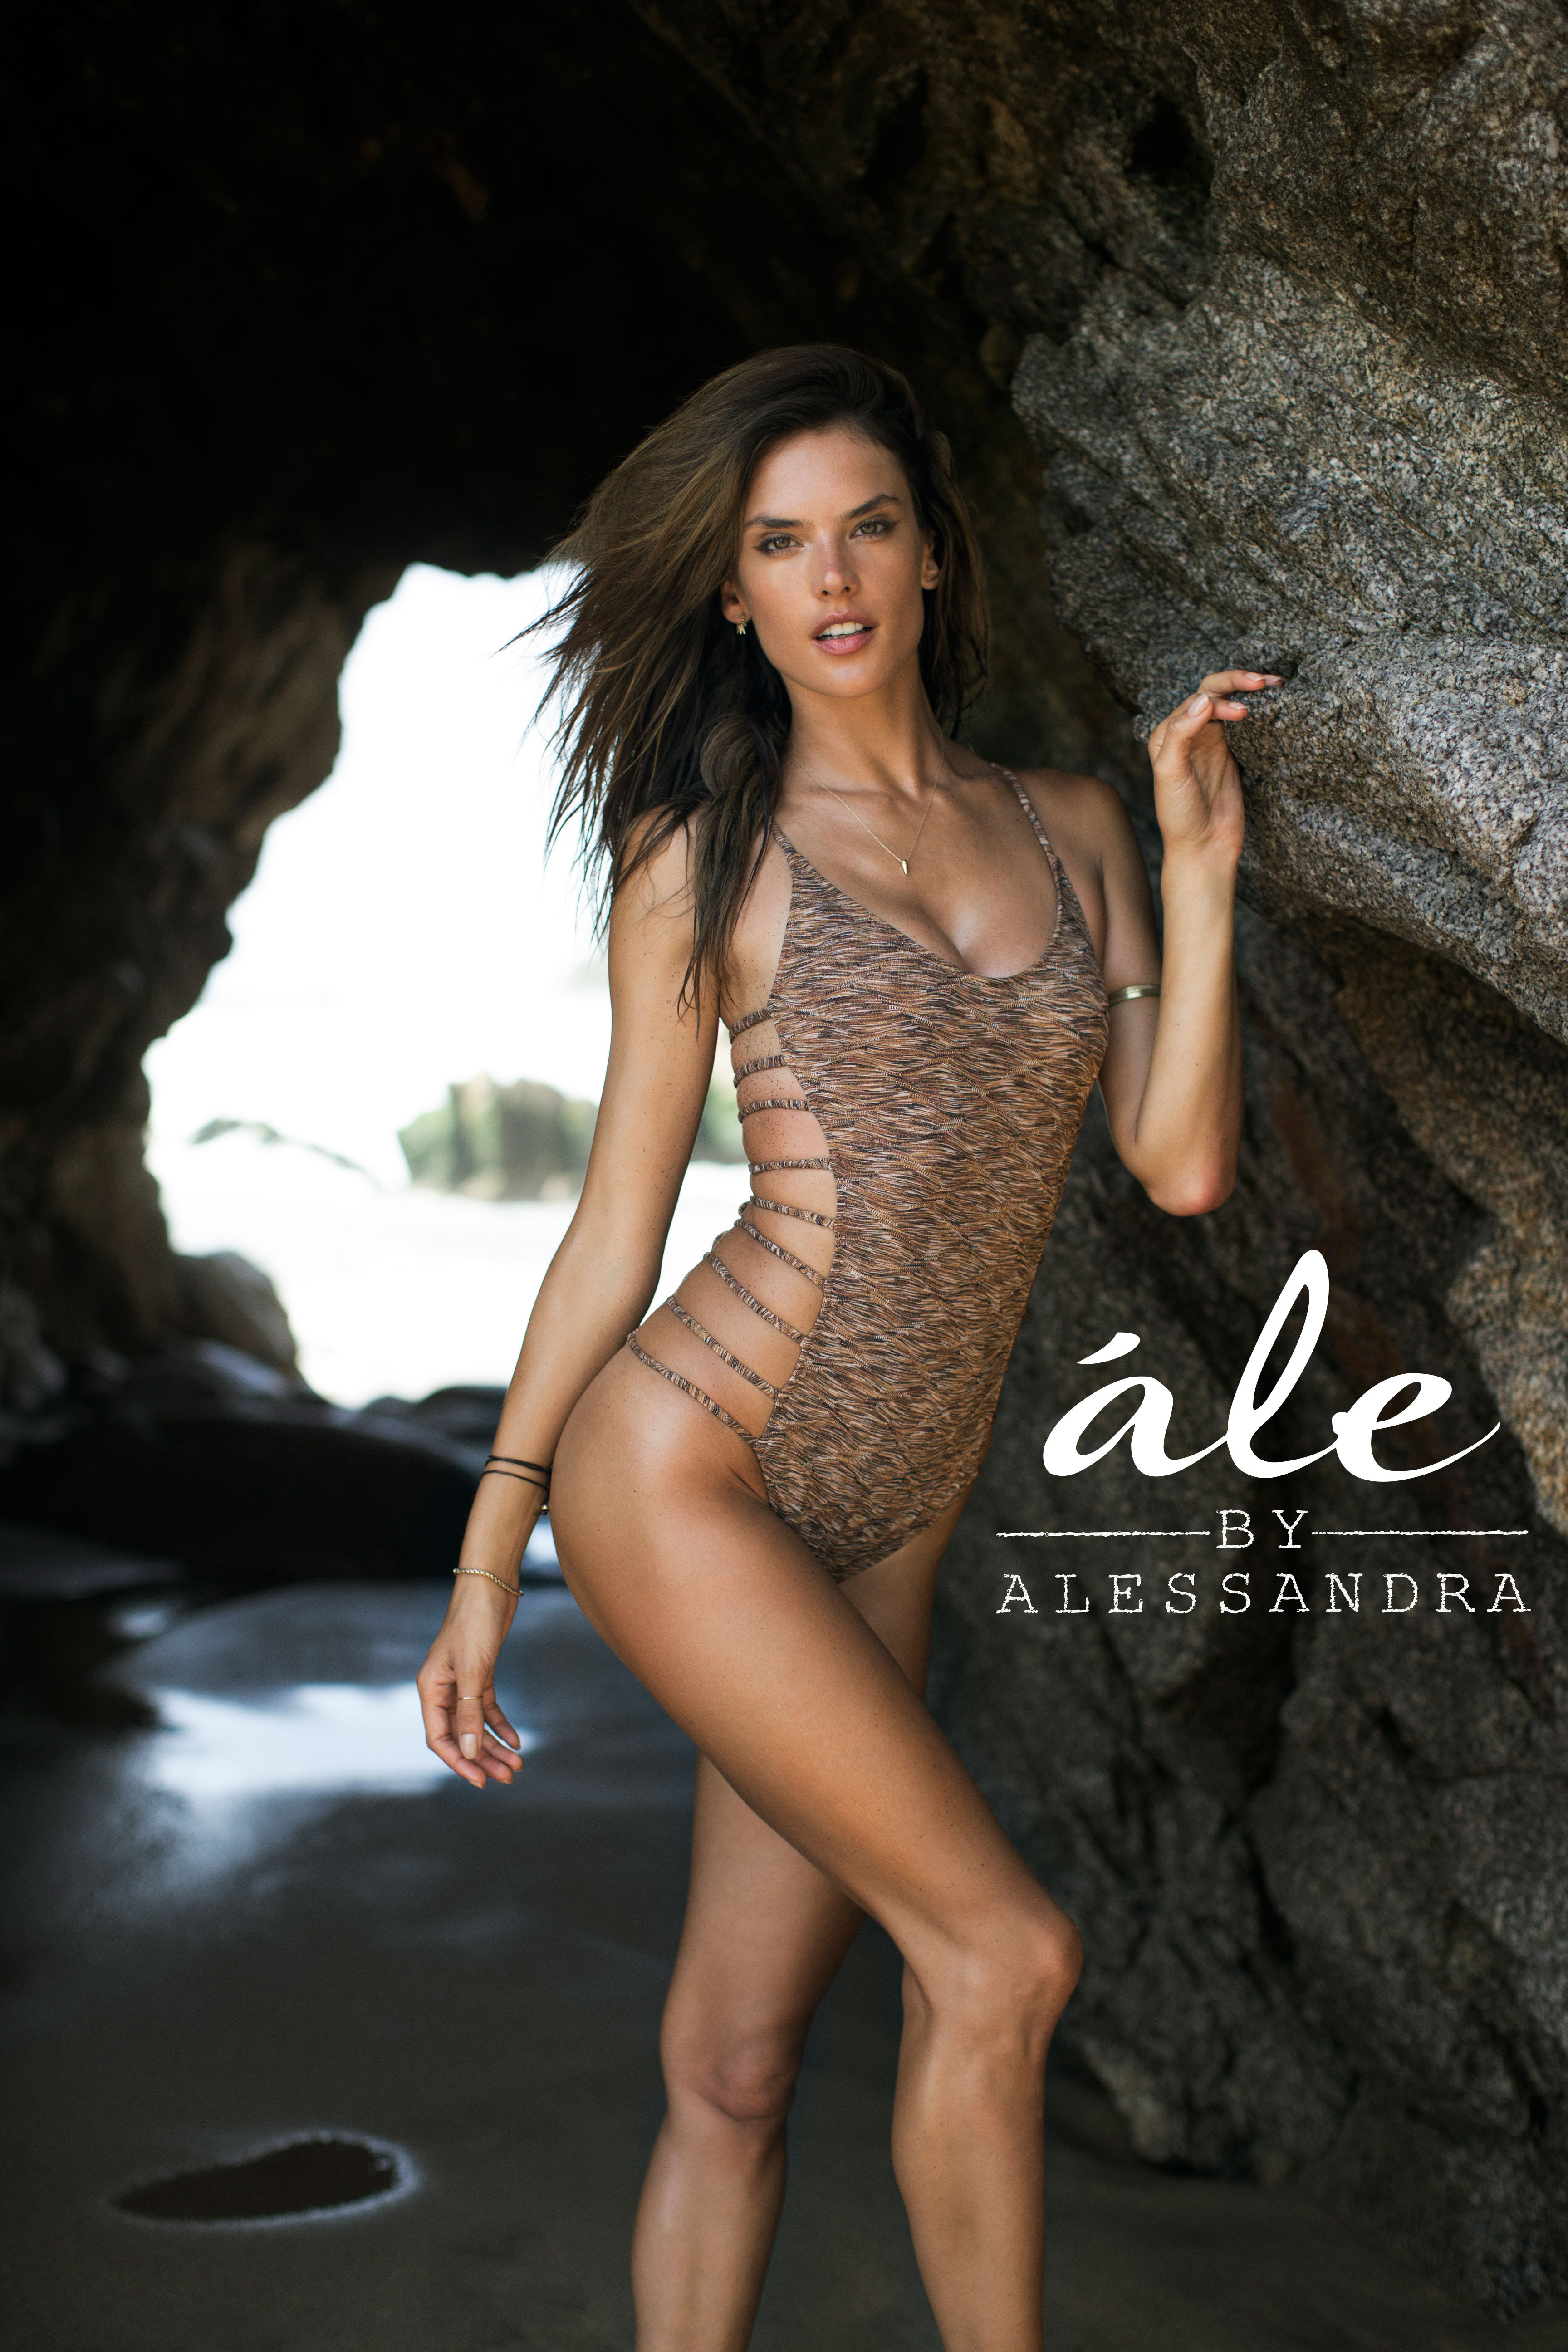 Cherokee global brands announces the debut of le by alessandra for le by alessandra and silver sunrise llc andrea sobel 818 570 1260 asobelsilversunrisellc or for alessandra ambrosio brown talent pr thecheapjerseys Image collections